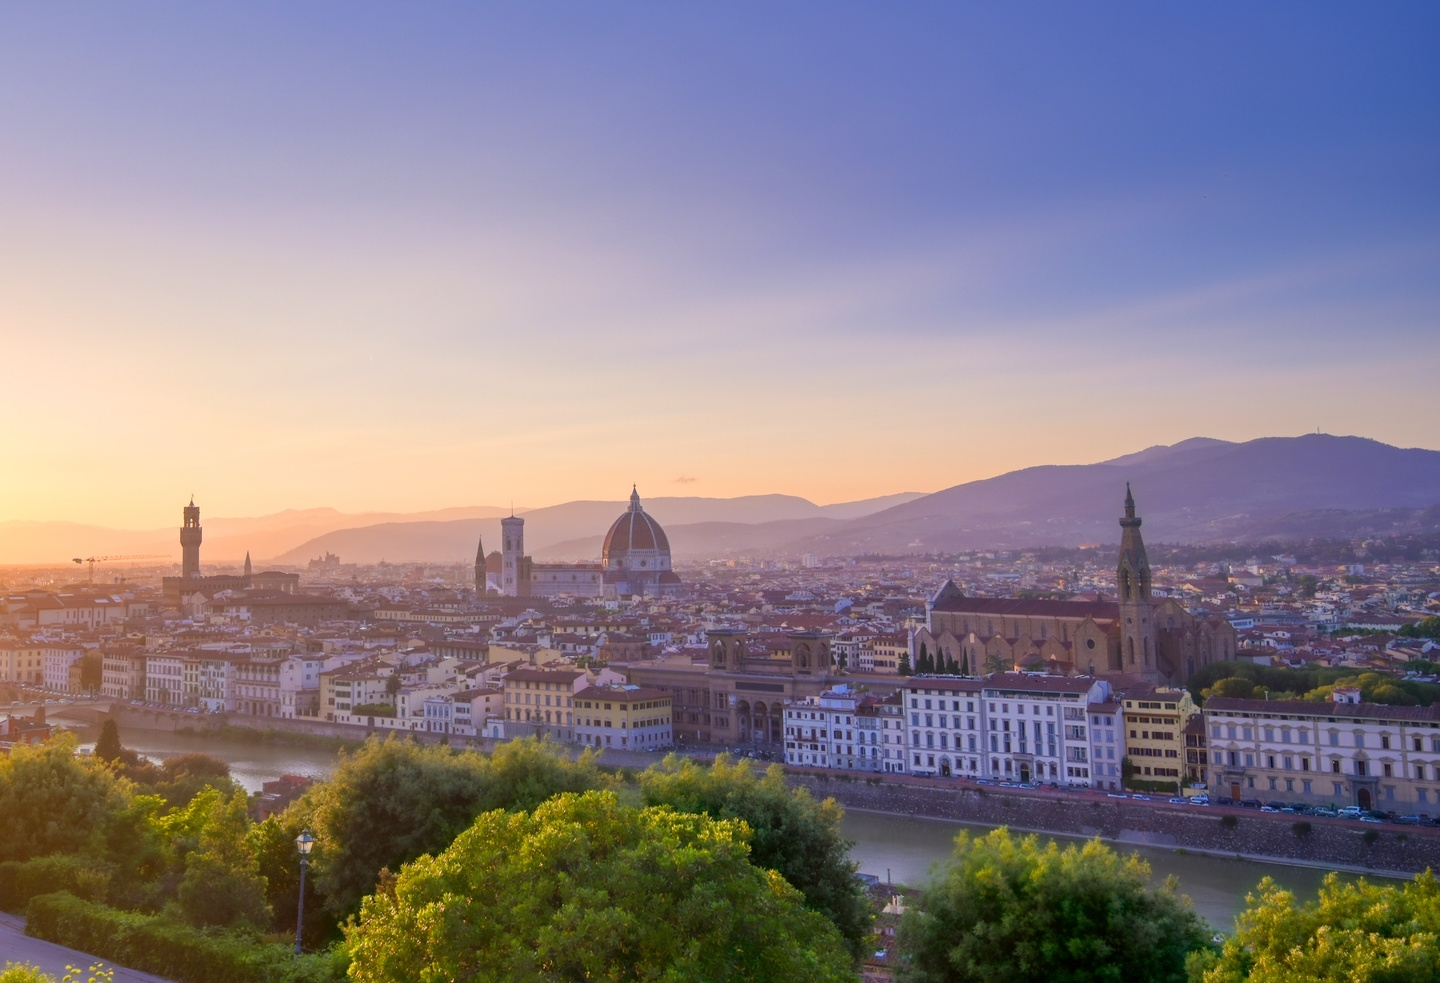 Looking down on Florence, Italy at sunrise.